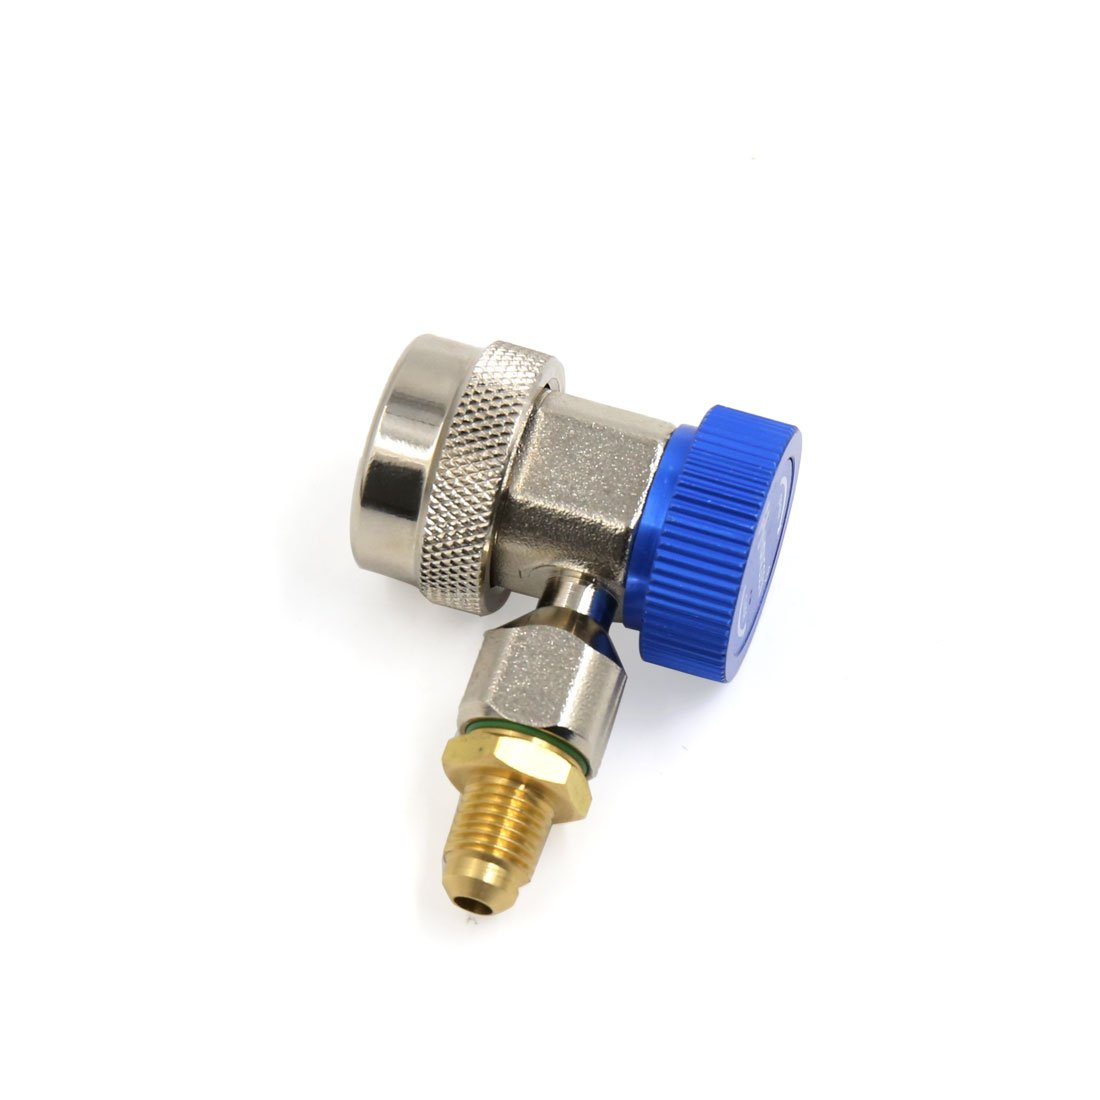 uxcell Blue Low Side Adjustable Air Conditioner Quick Coupler Connector Adapter for Car by uxcell (Image #1)